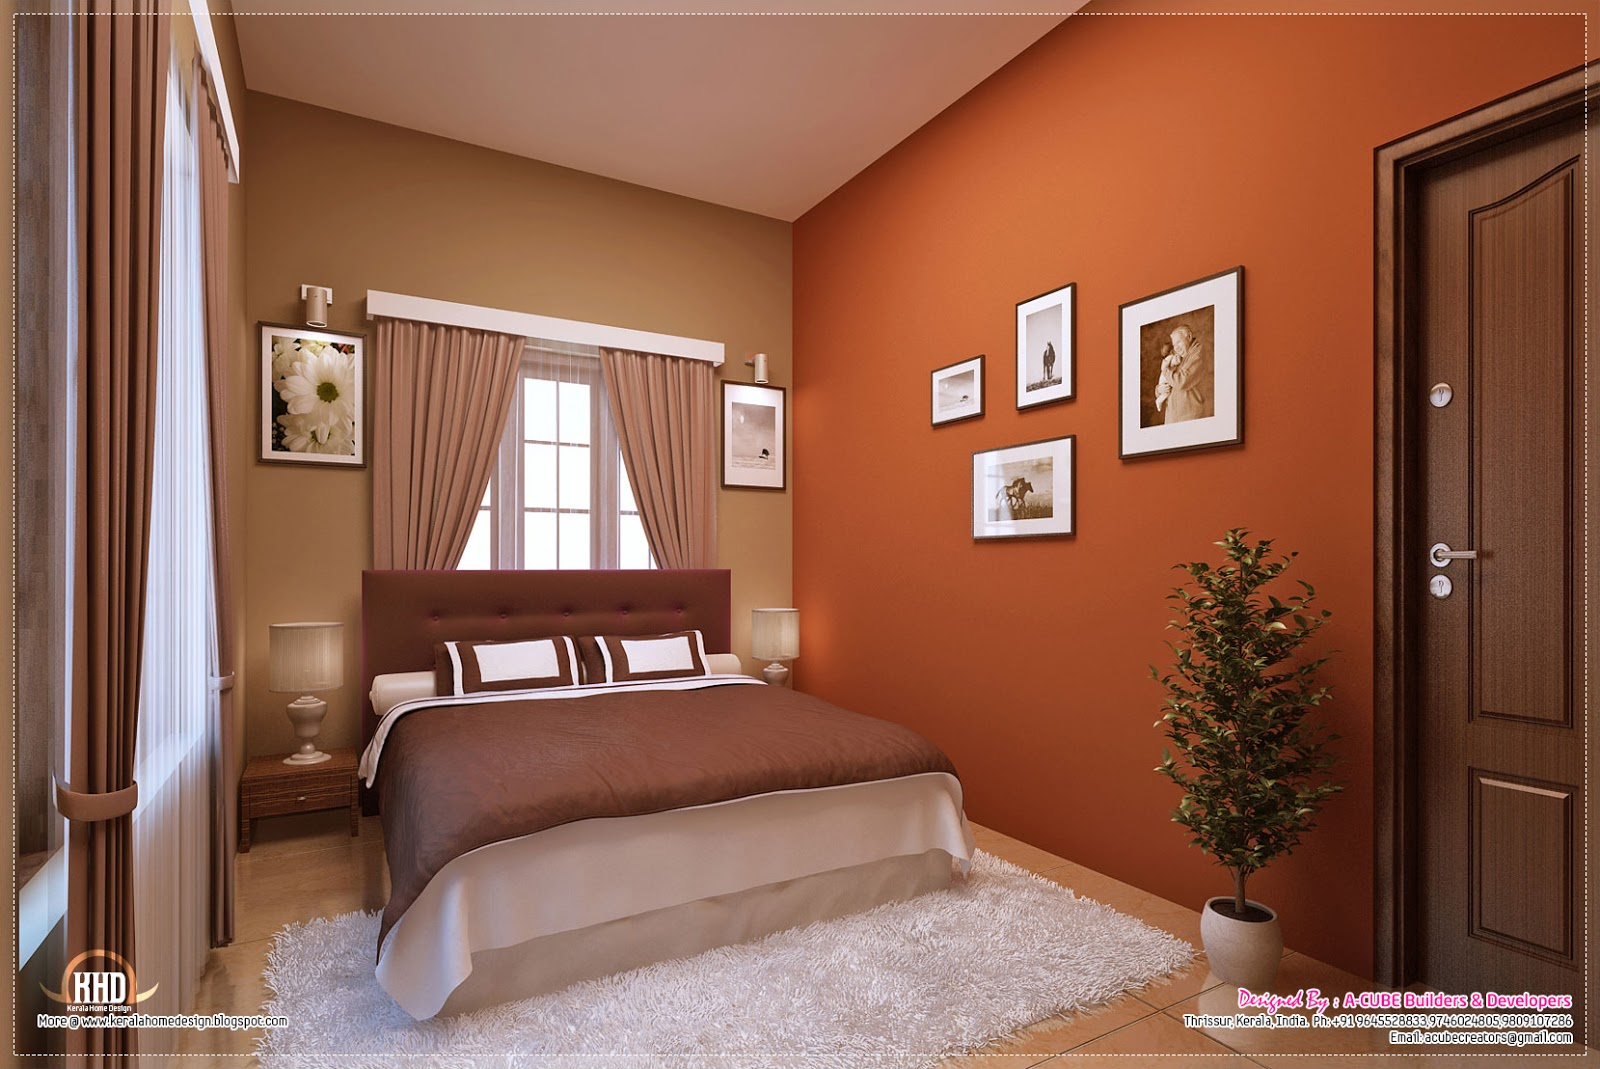 Awesome interior decoration ideas kerala home design and for House paint design interior